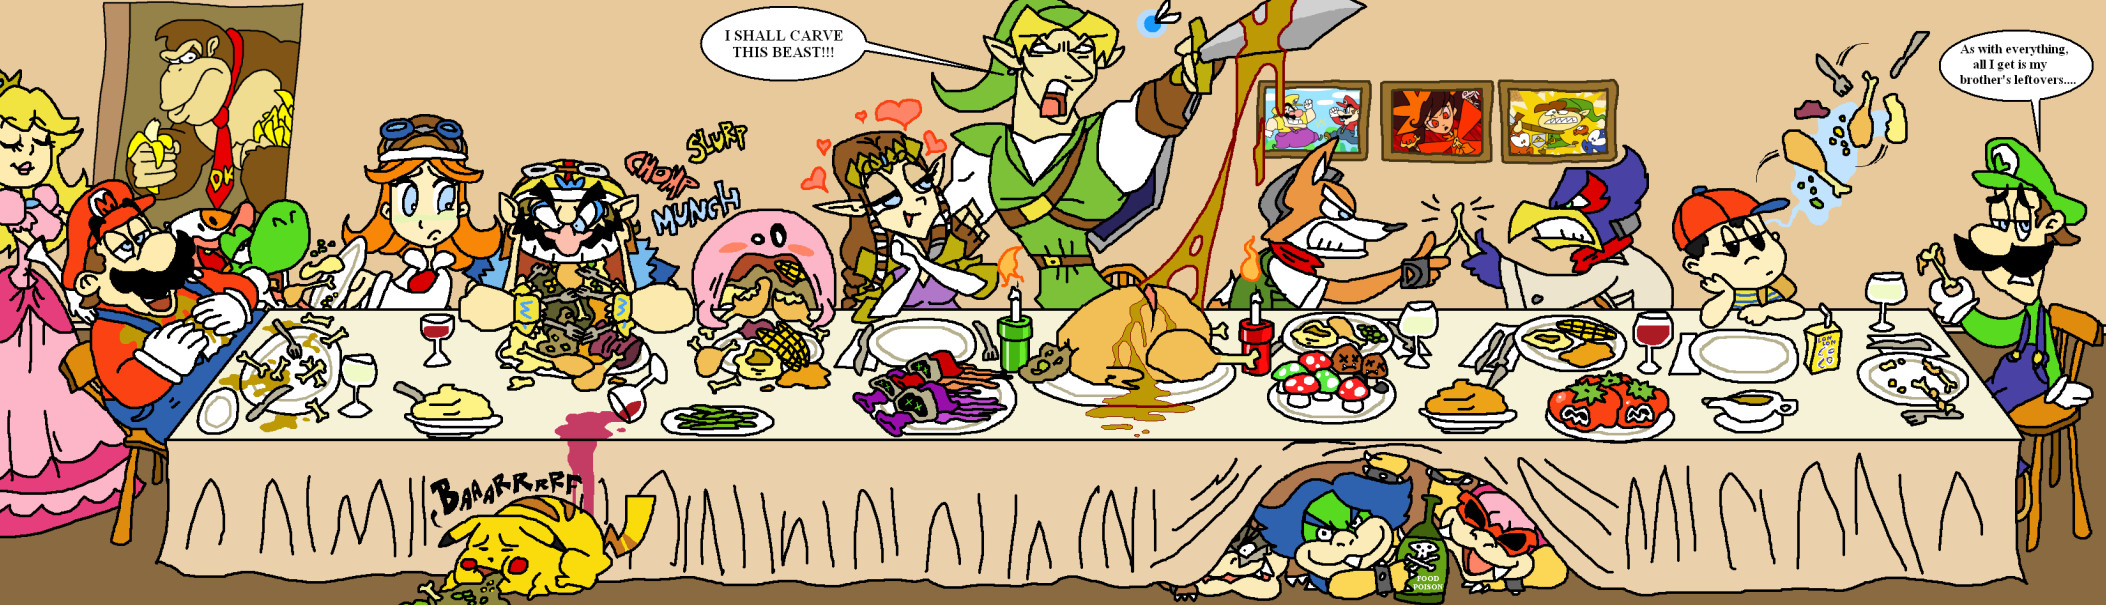 Thanksgiving with Nintendo by HoppyBadBunny